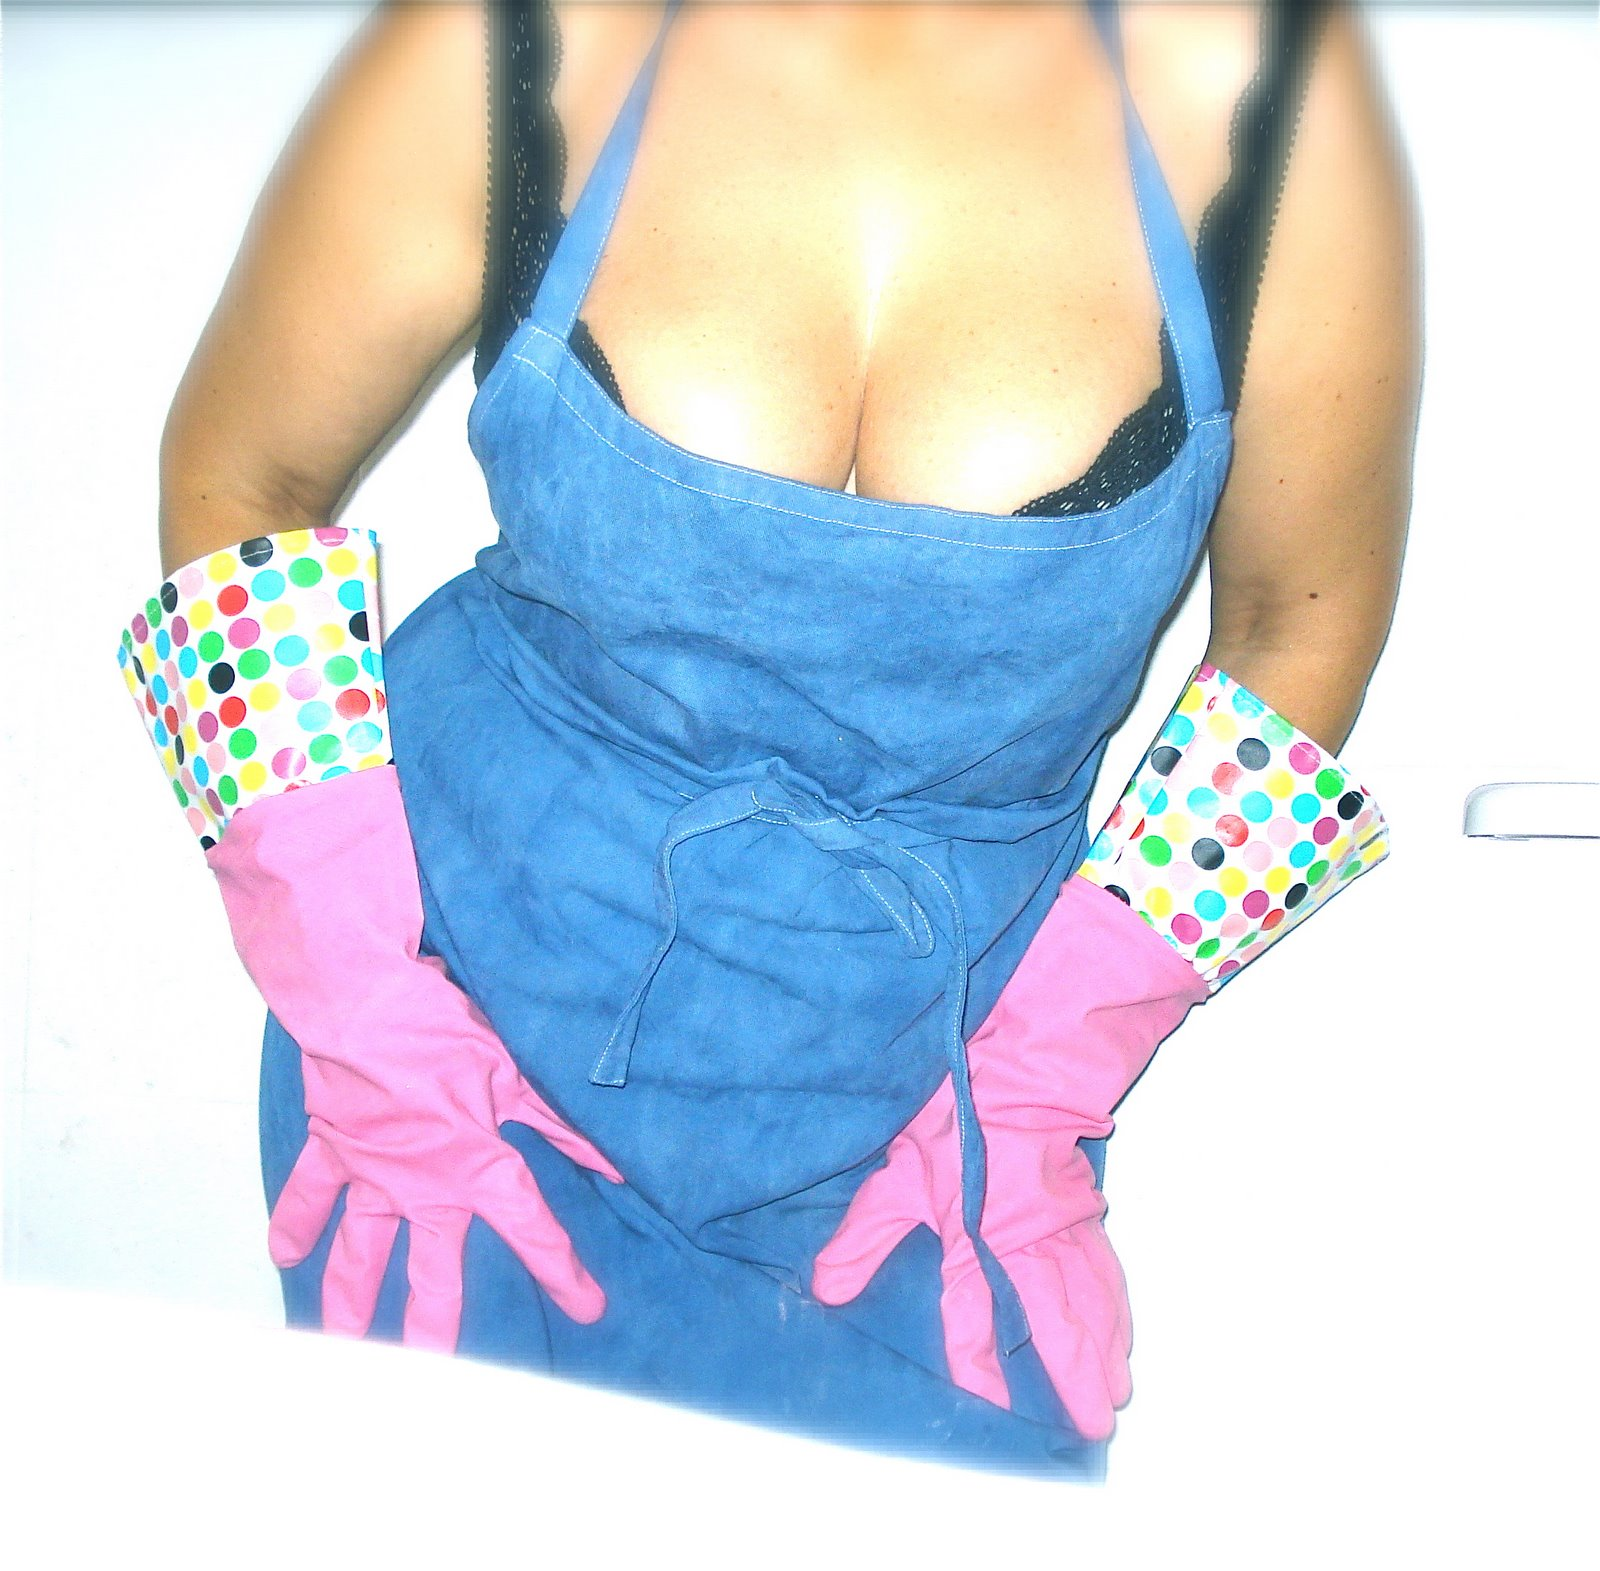 Photo: Pregnant woman wearing rubber gloves posing indoors © Alex